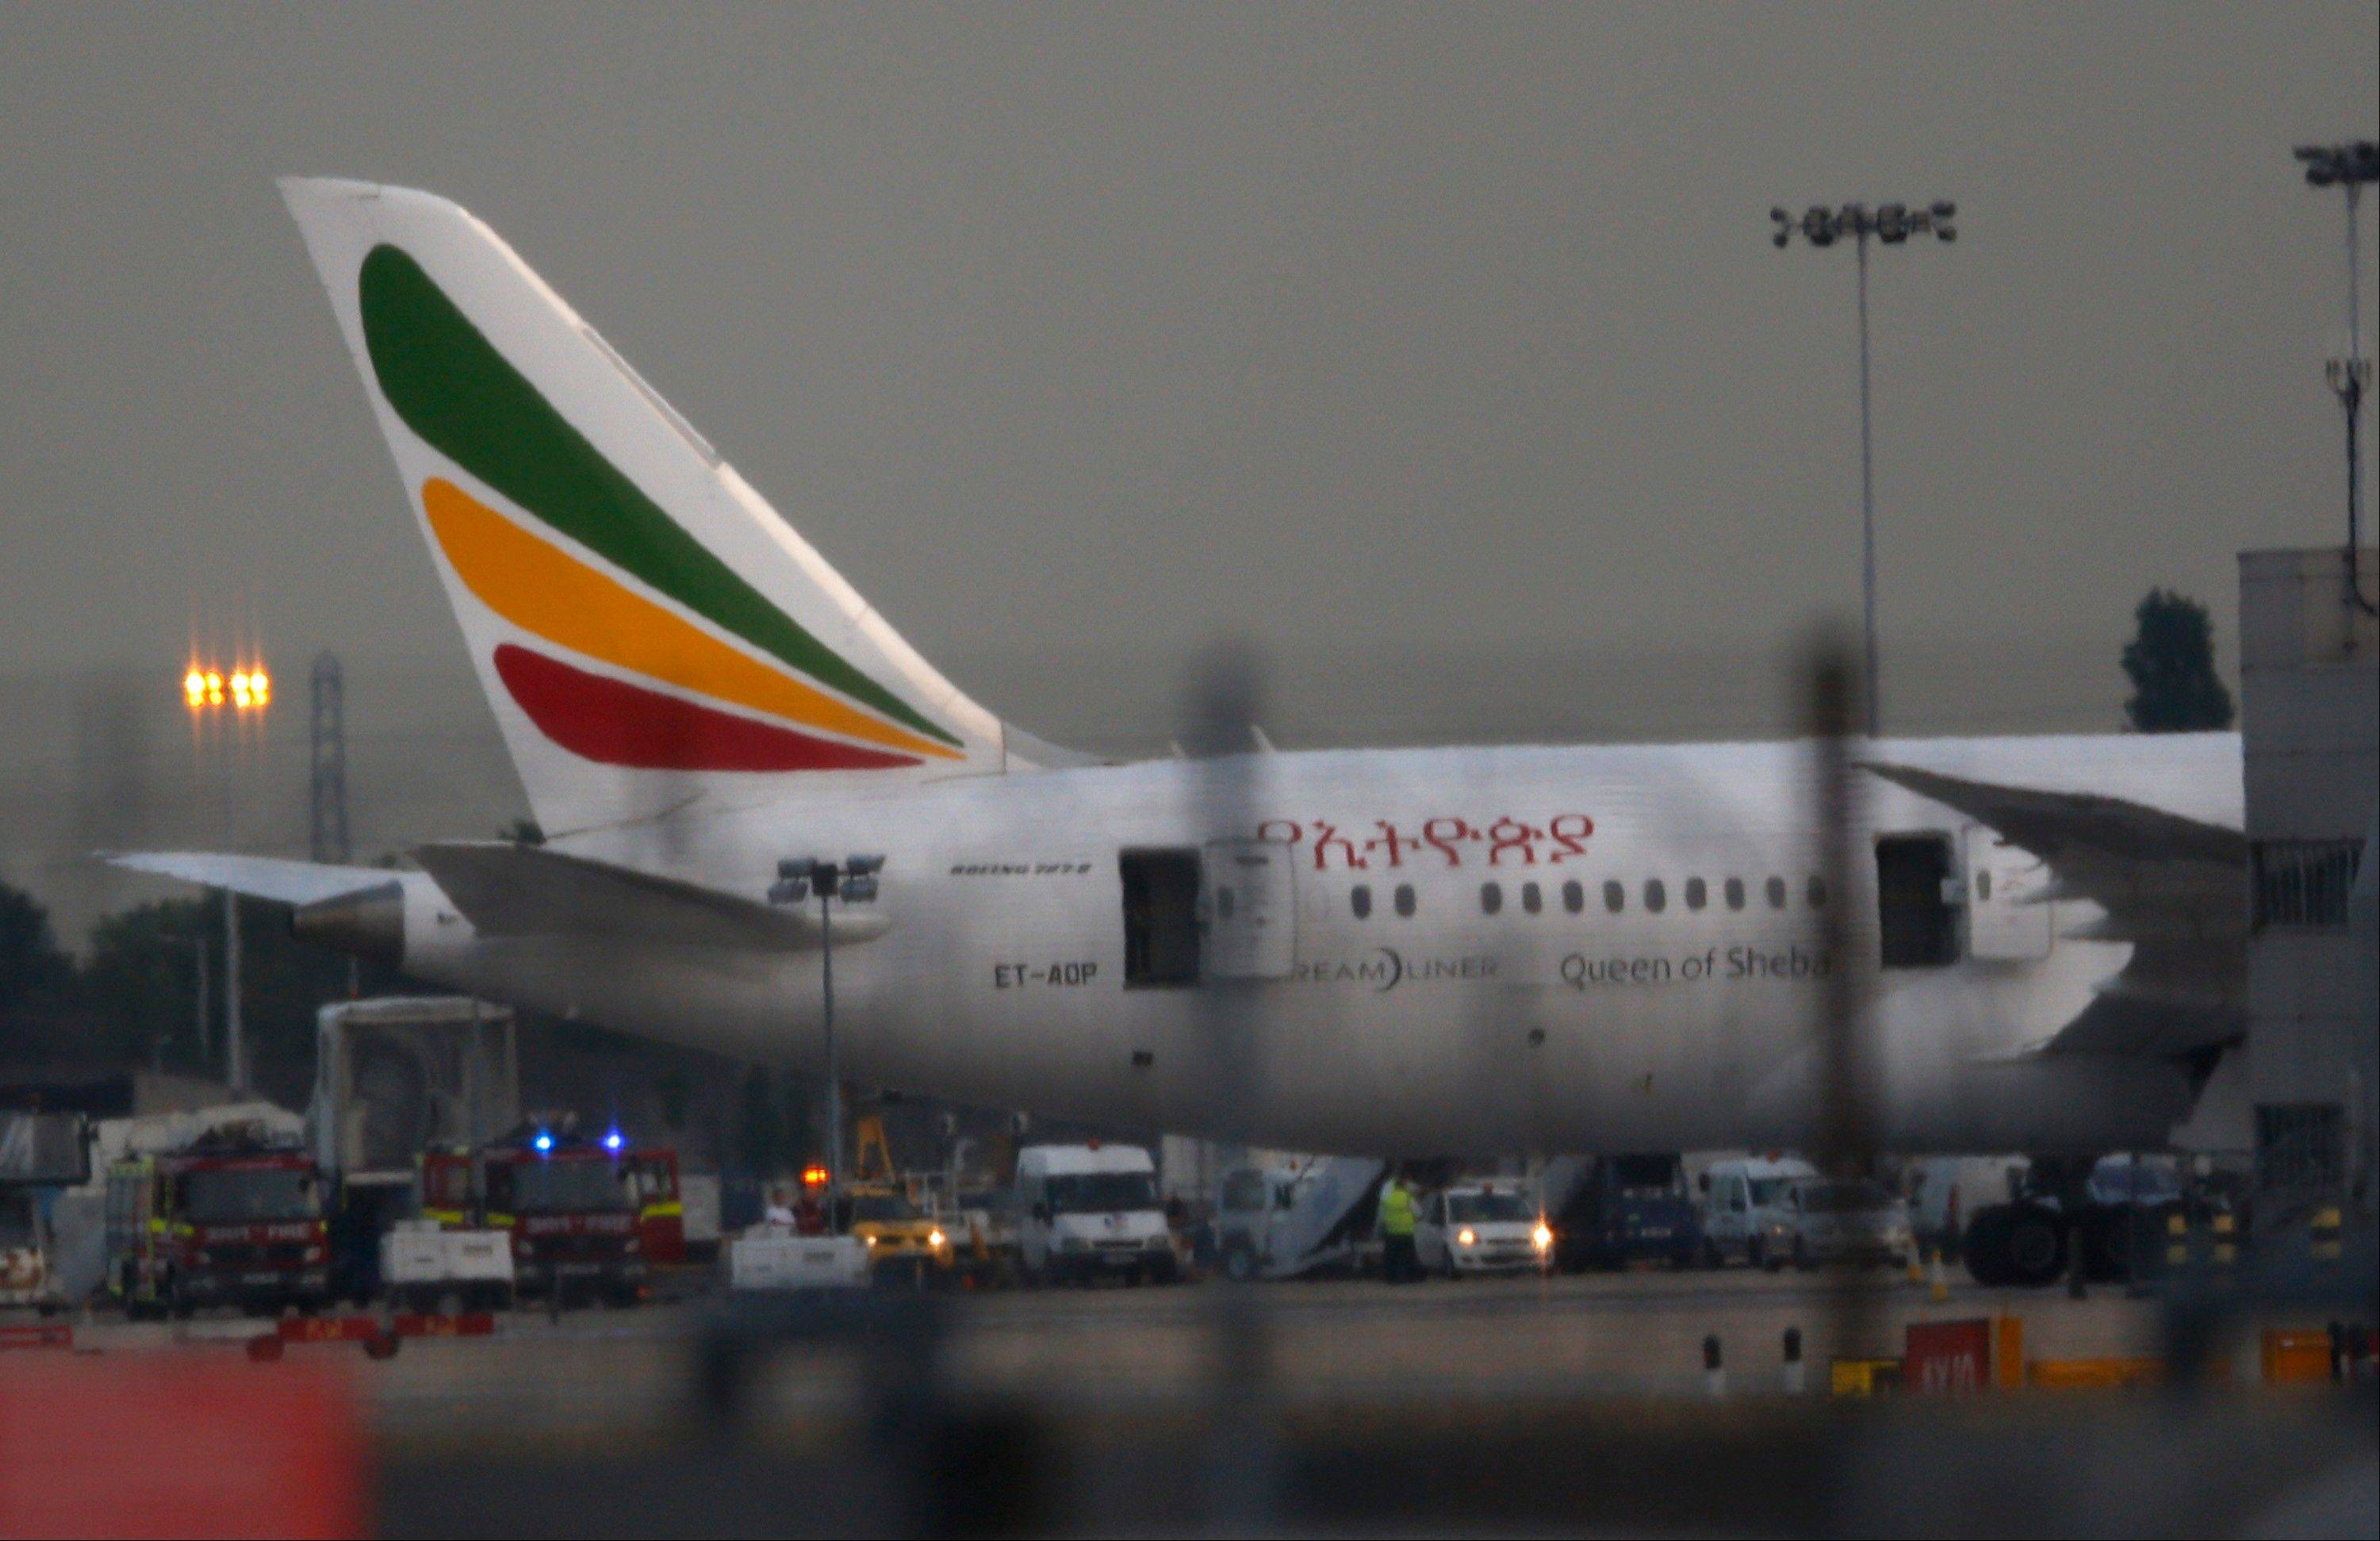 General view of the Air Ethiopian Boeing 787 Dreamliner 'Queen of Sheba' aeroplane, on the runway Friday near Terminal 3, at Heathrow Airport, London.